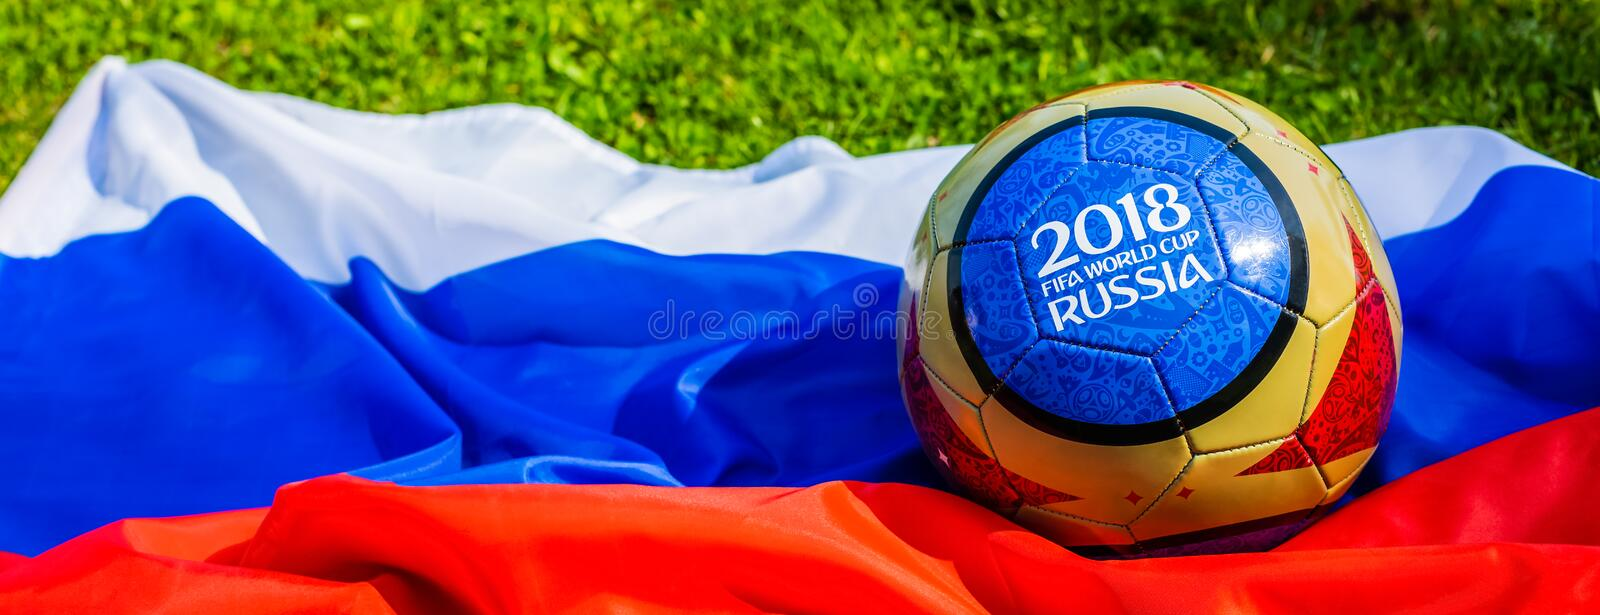 Moscow, Russia. May 13, 2018. Souvenir ball with the emblems of the FIFA World Cup 2018 in Moscow. stock photo